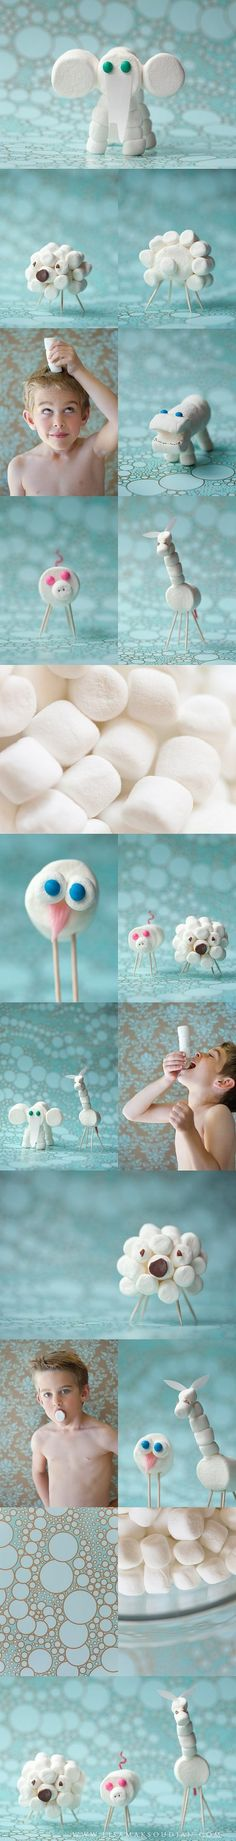 Marshmallows & toothpicks - great way for kids to create!